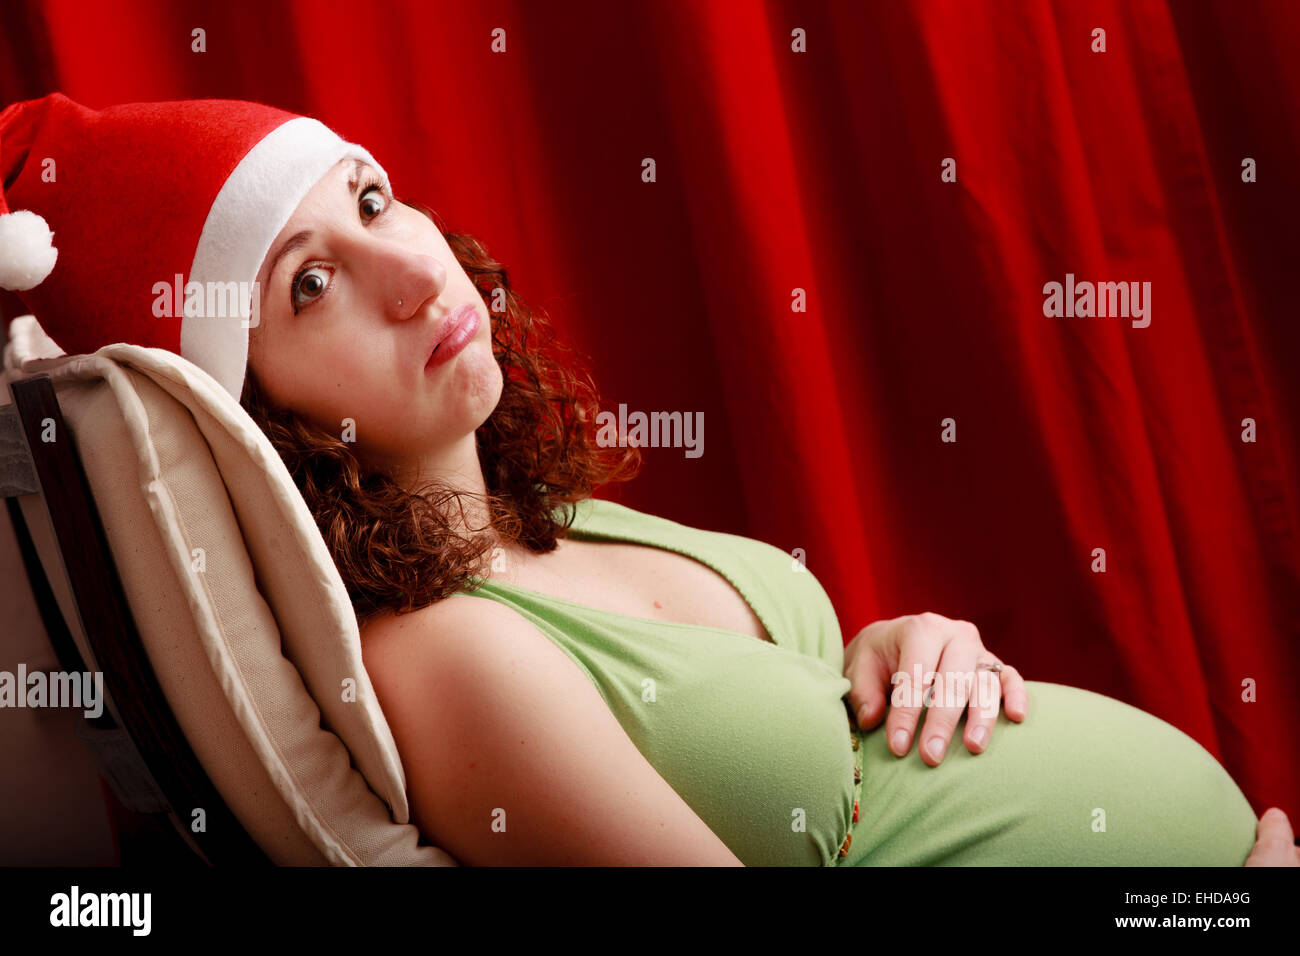 Full term pregnant woman. - Stock Image